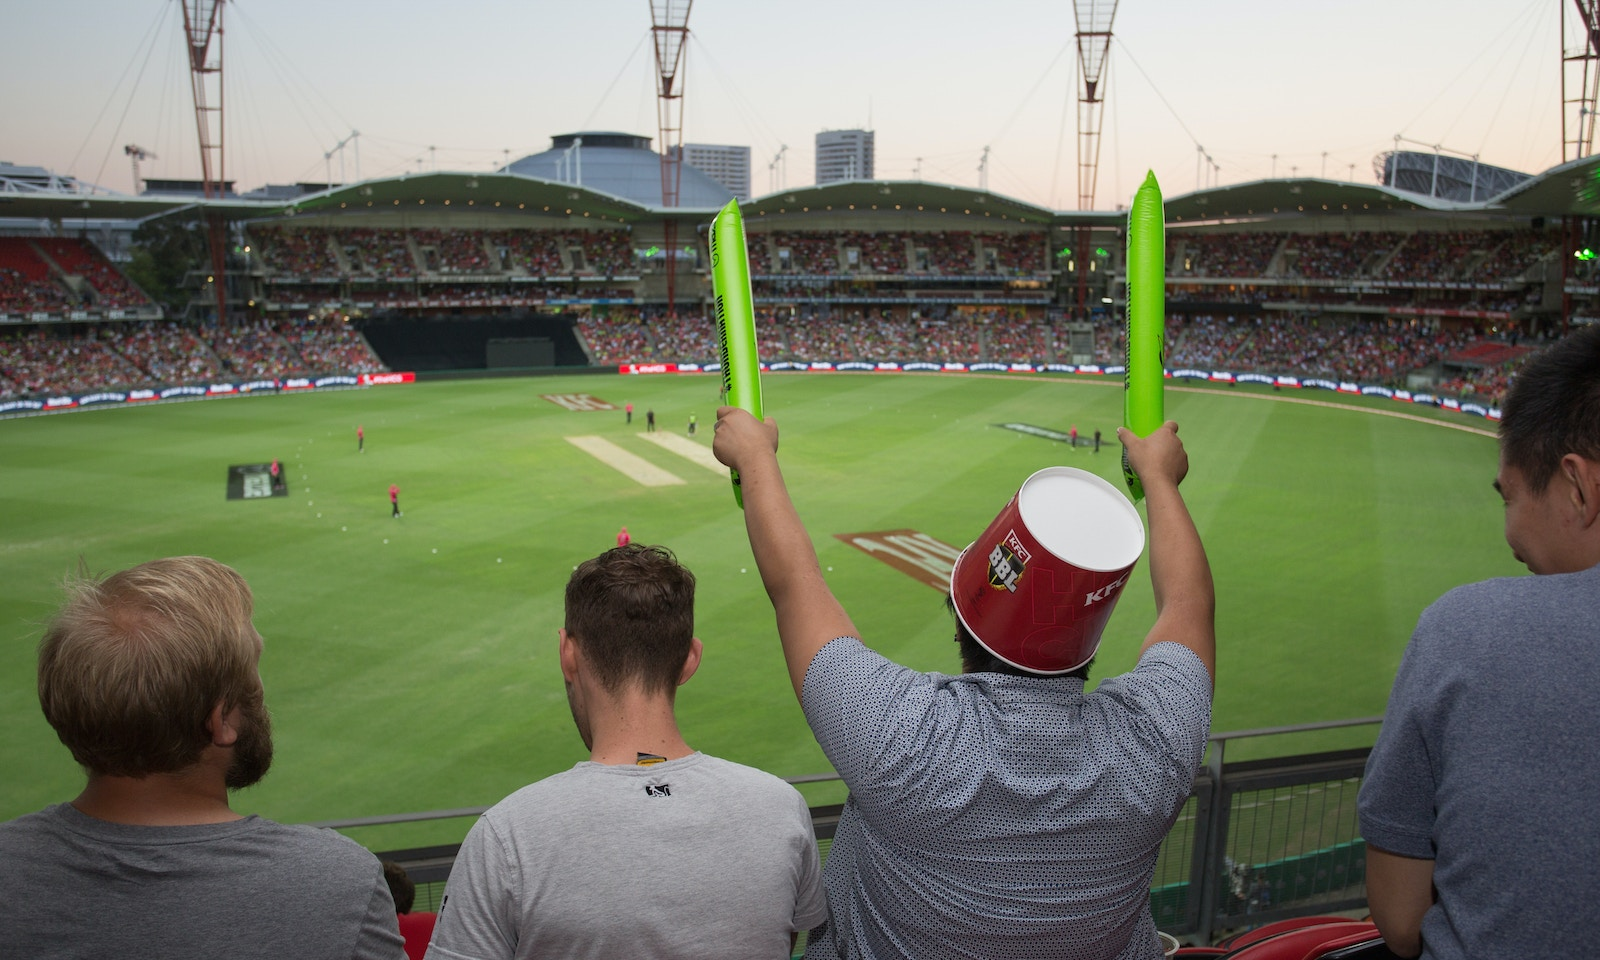 Big Bash League 2018/19 Season; Sydney Thunder Hospitality